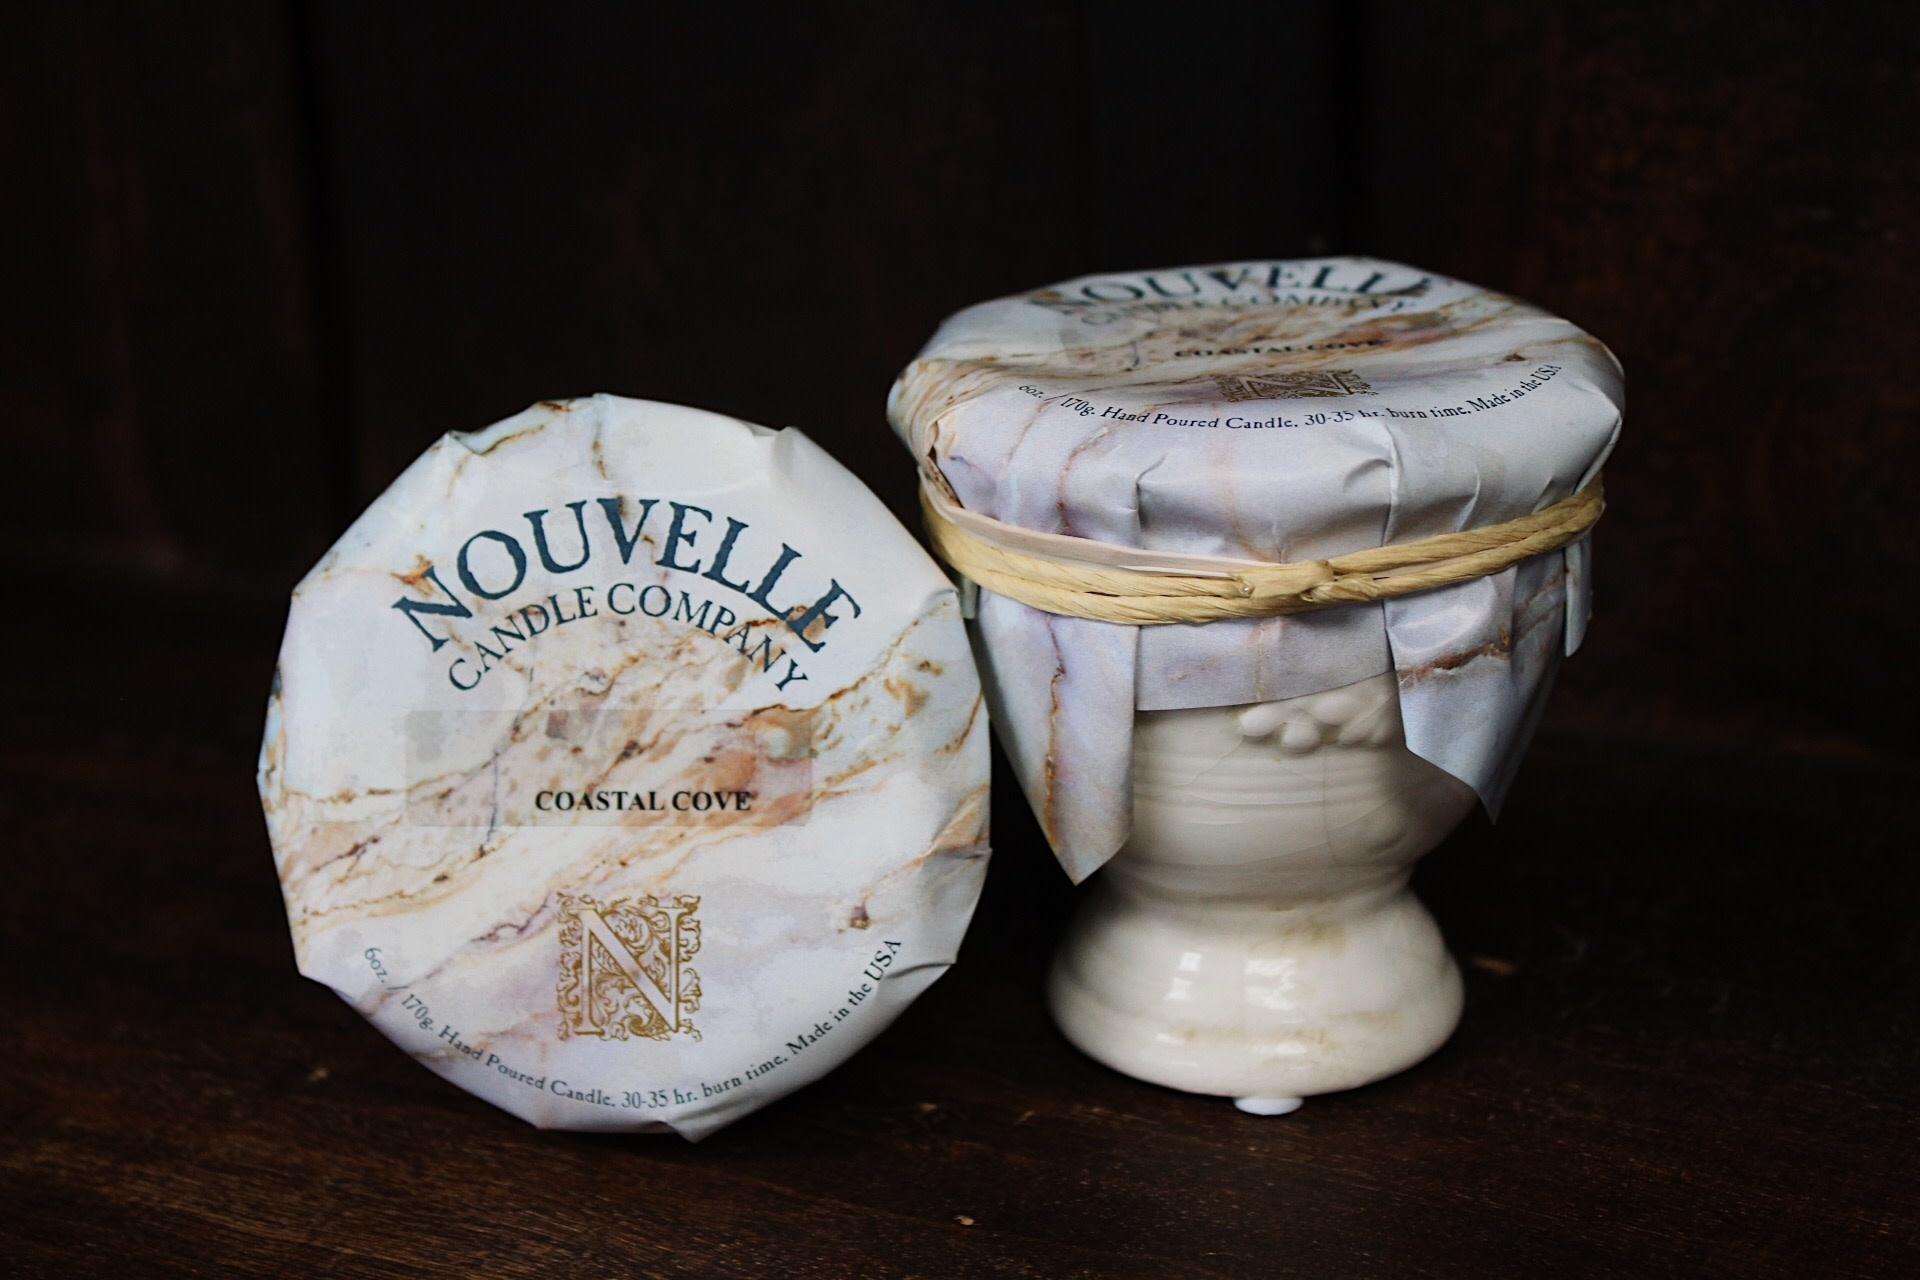 Nouvelle Candle Company Coastal Cove French Urn Petite